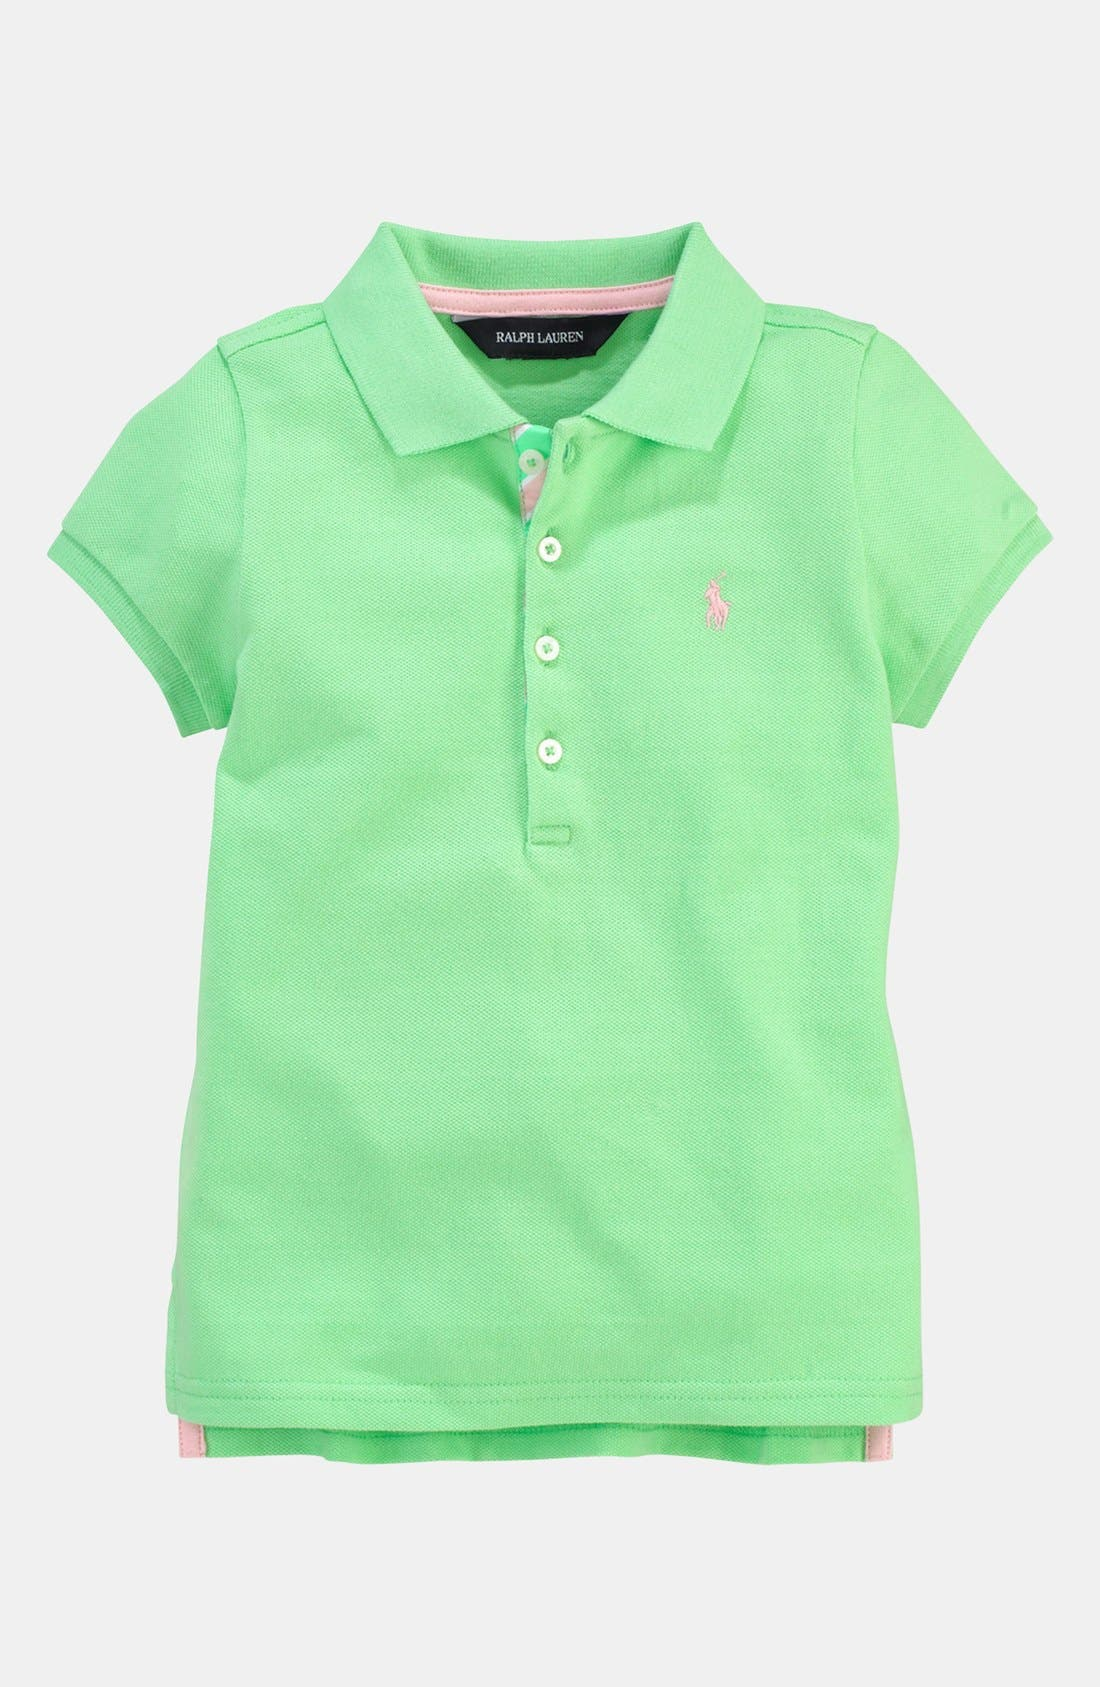 Alternate Image 1 Selected - Ralph Lauren Polo Shirt (Toddler)